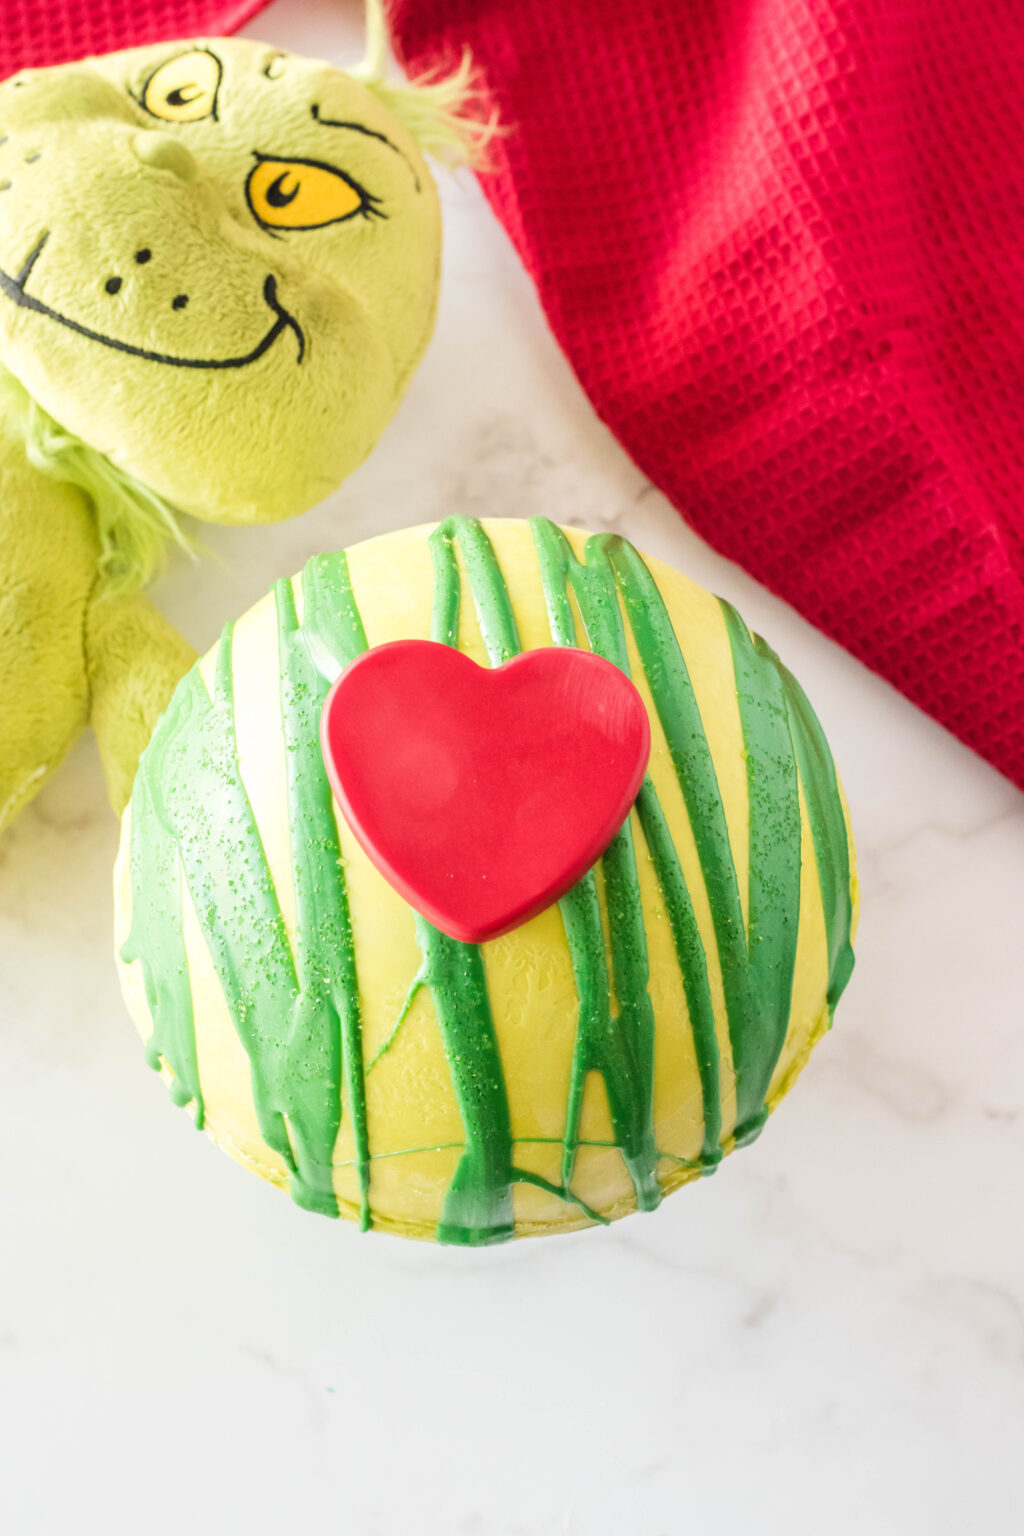 giant grinch hot cocoa bomb on table